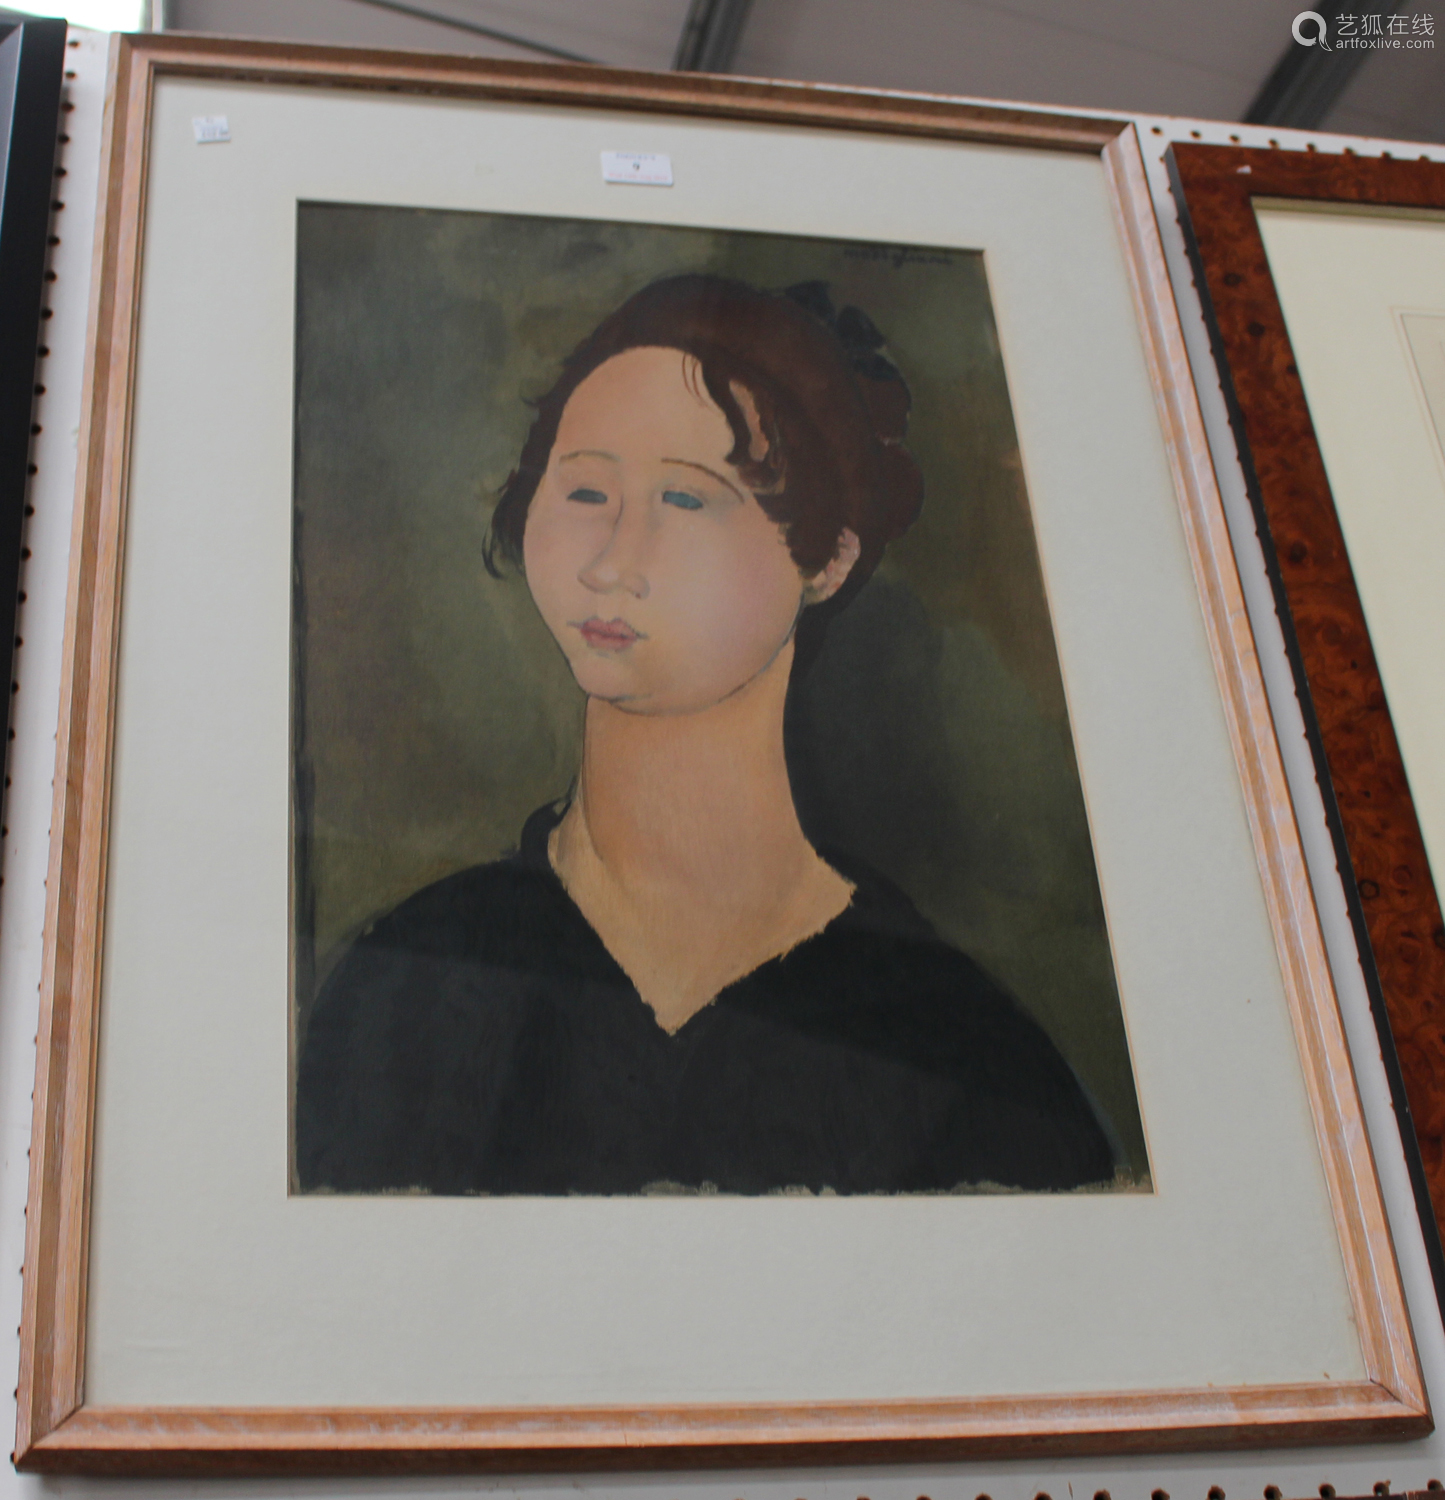 After Amedeo Modigliani - La Bourguignonne, mid-20th century collotype, published by Guy Spitzer,